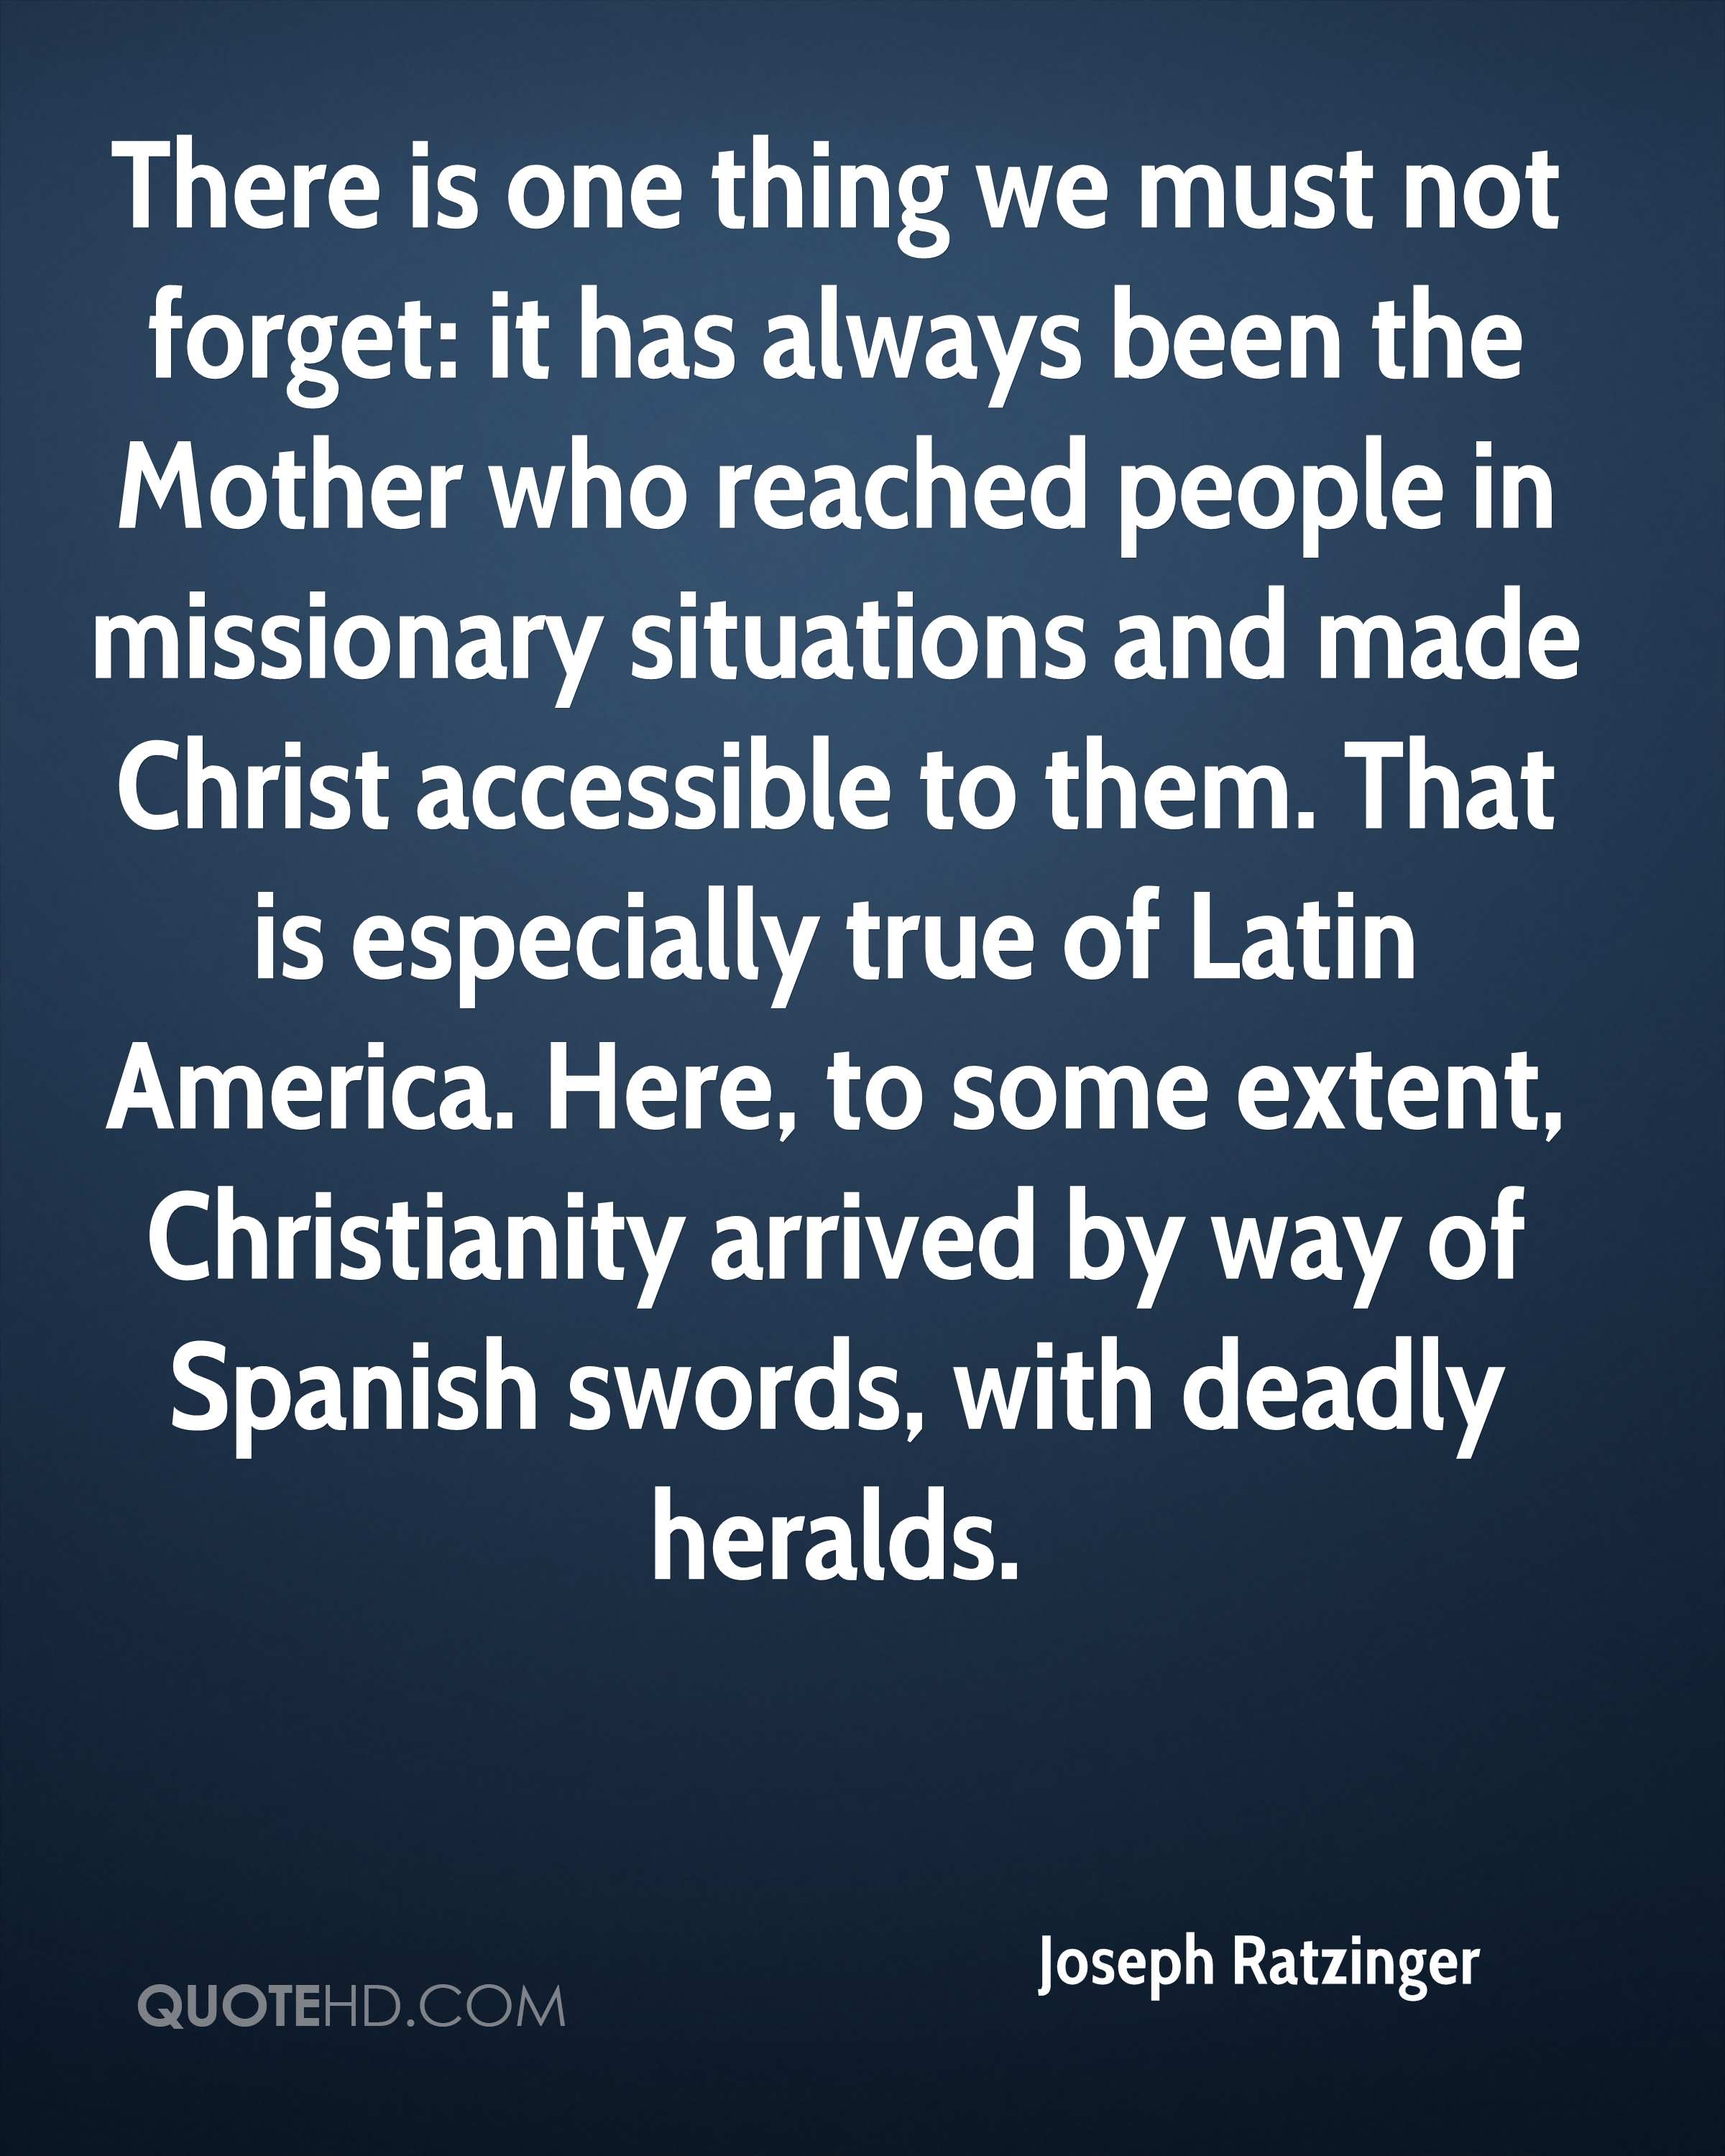 There is one thing we must not forget: it has always been the Mother who reached people in missionary situations and made Christ accessible to them. That is especially true of Latin America. Here, to some extent, Christianity arrived by way of Spanish swords, with deadly heralds.